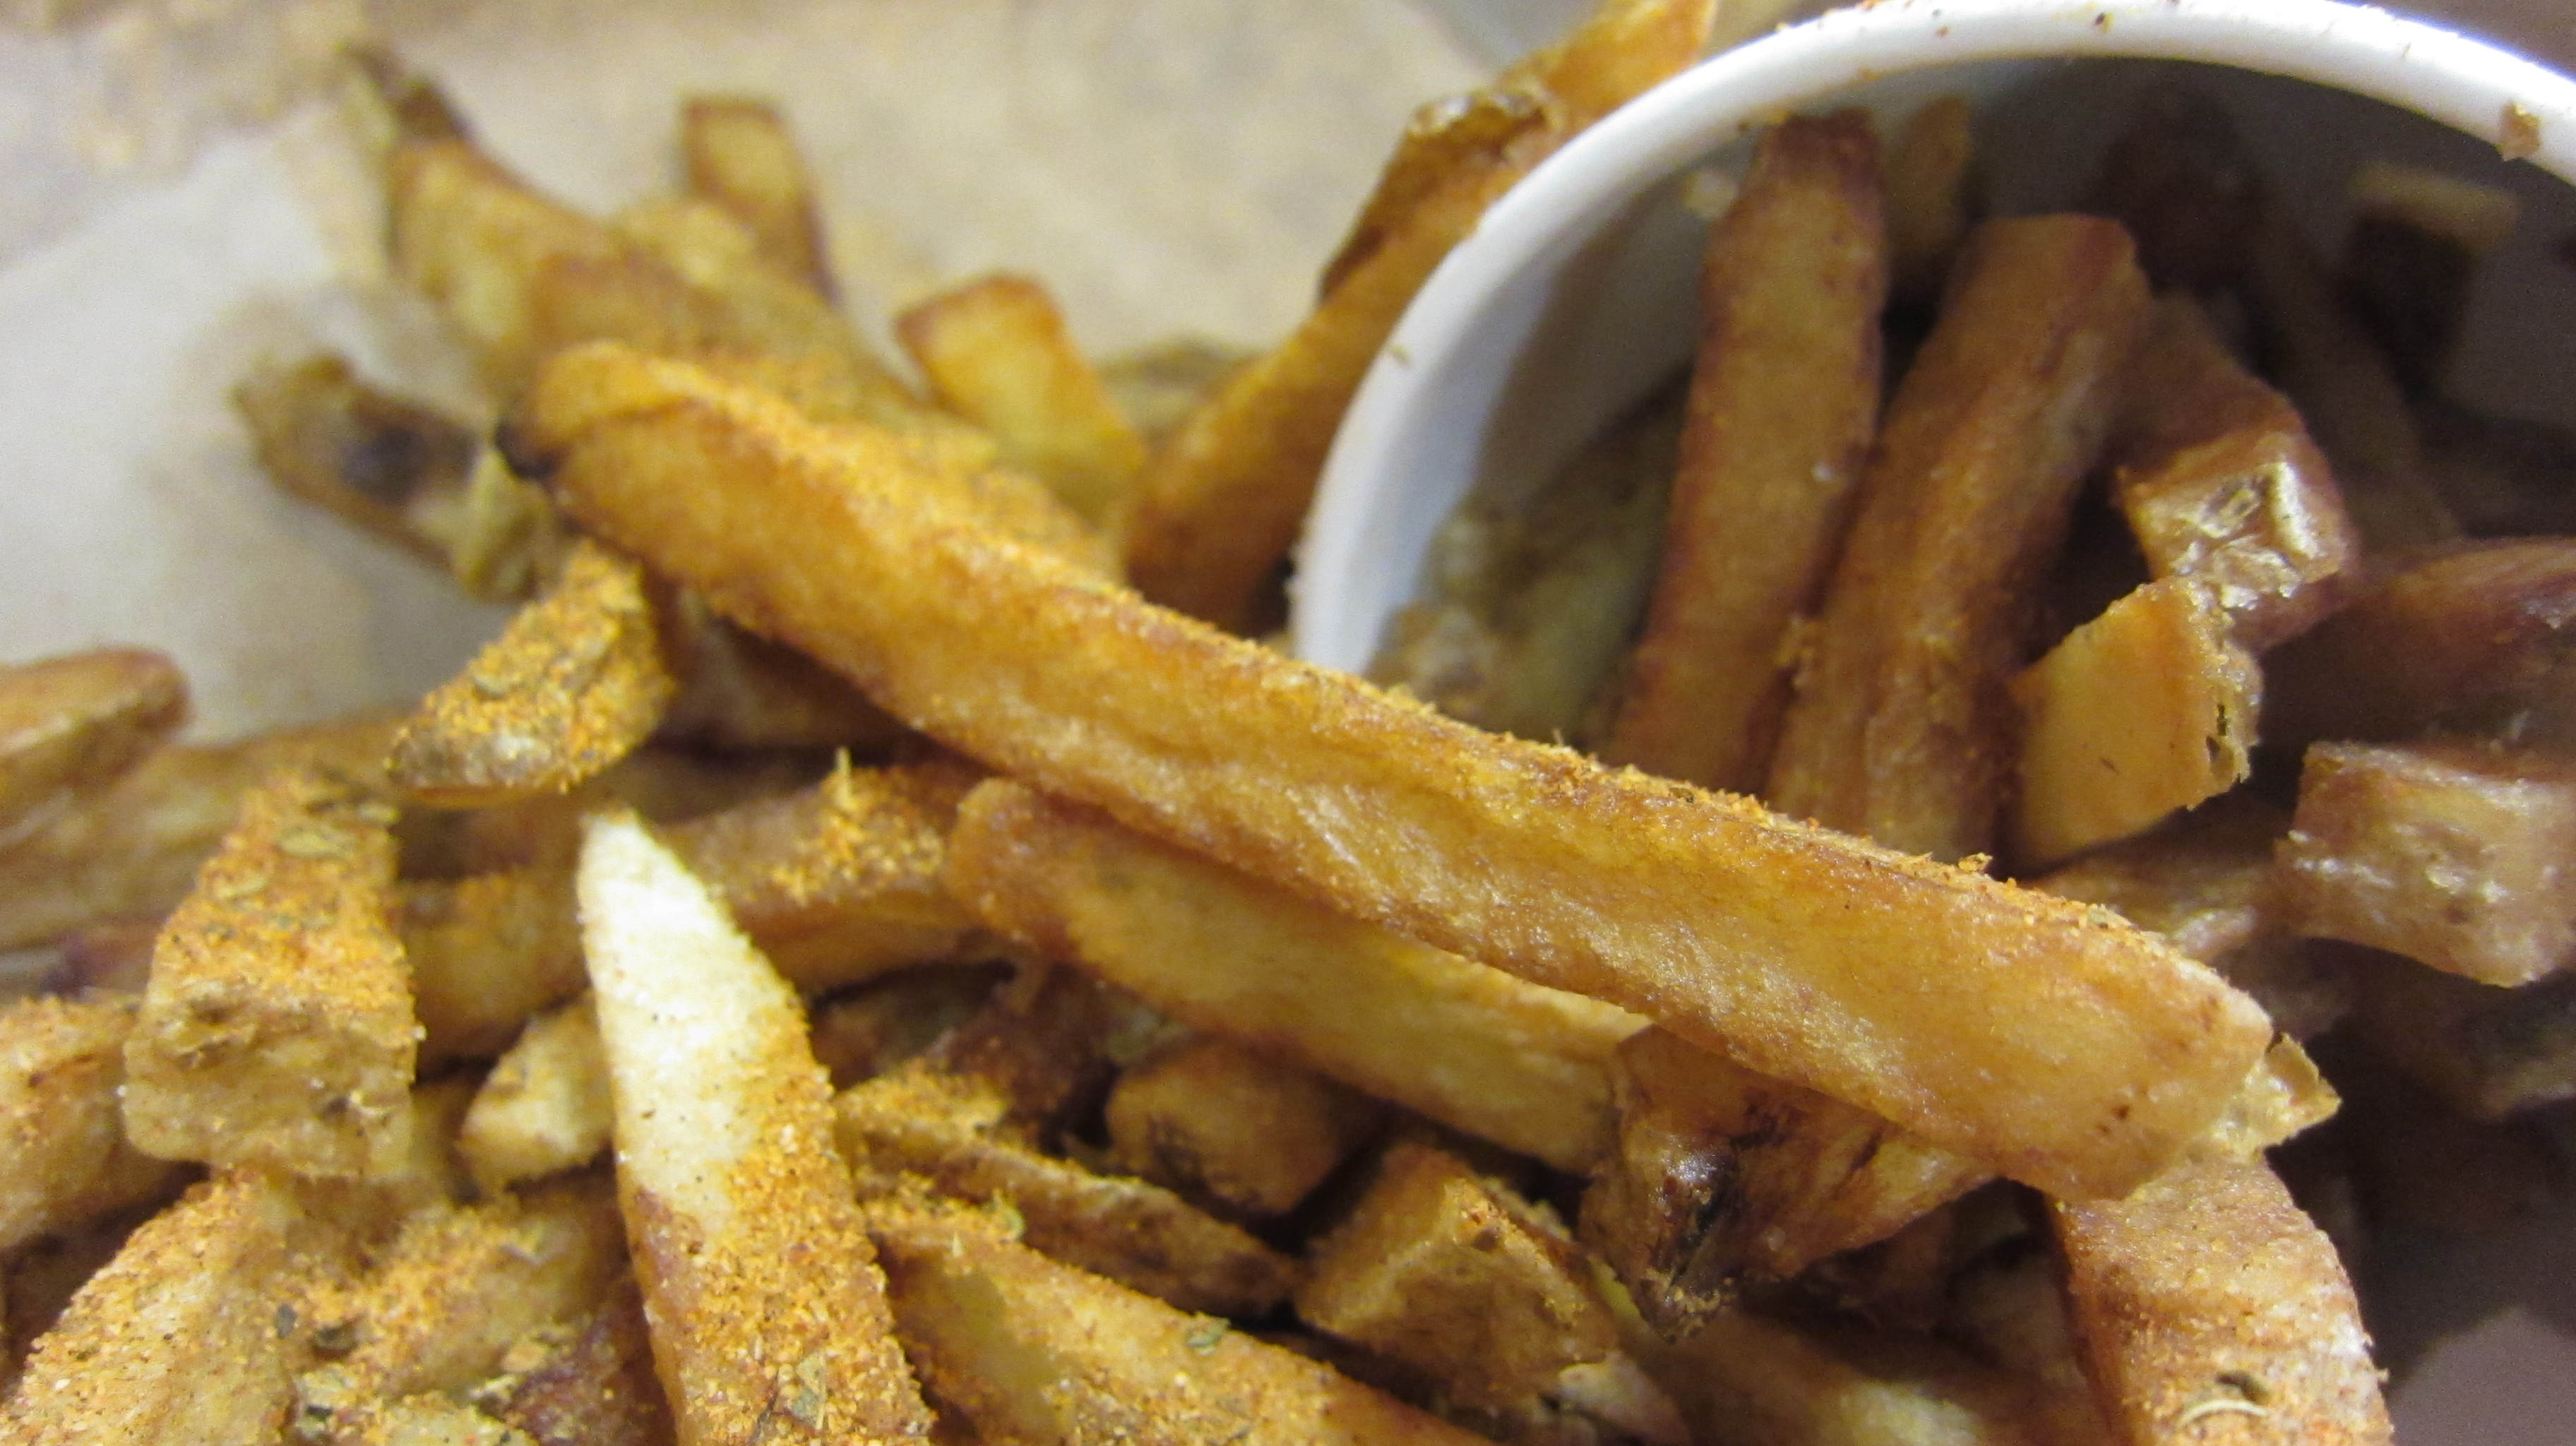 Guys Burgers and Fries – Fries